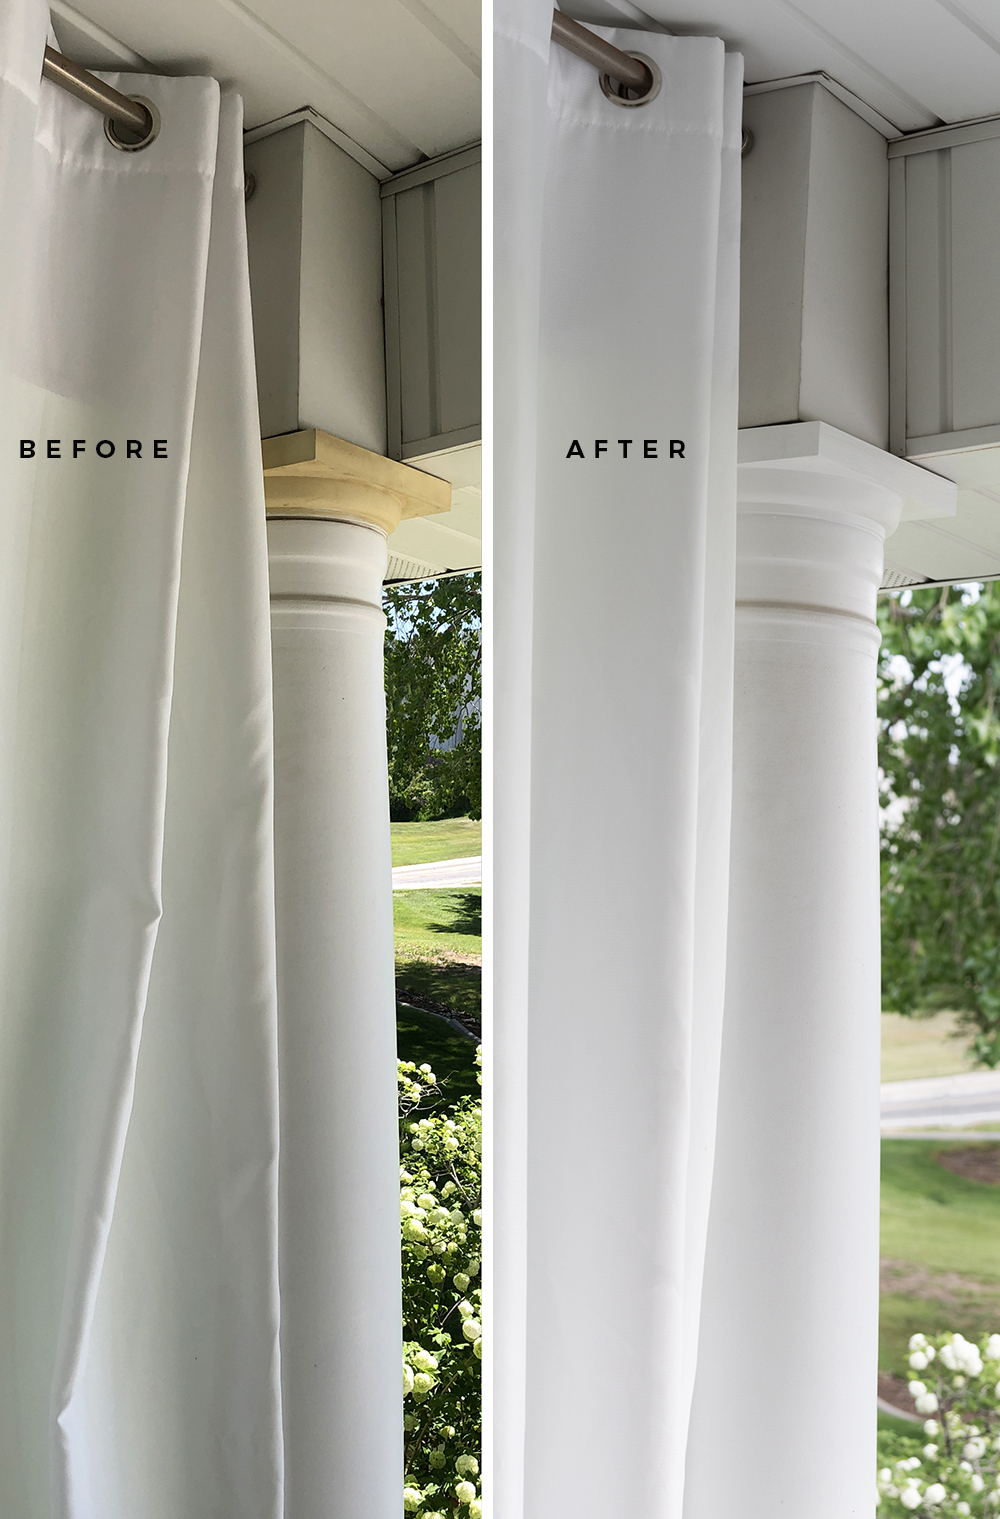 Painting Our Balcony Columns - roomfortuesday.com